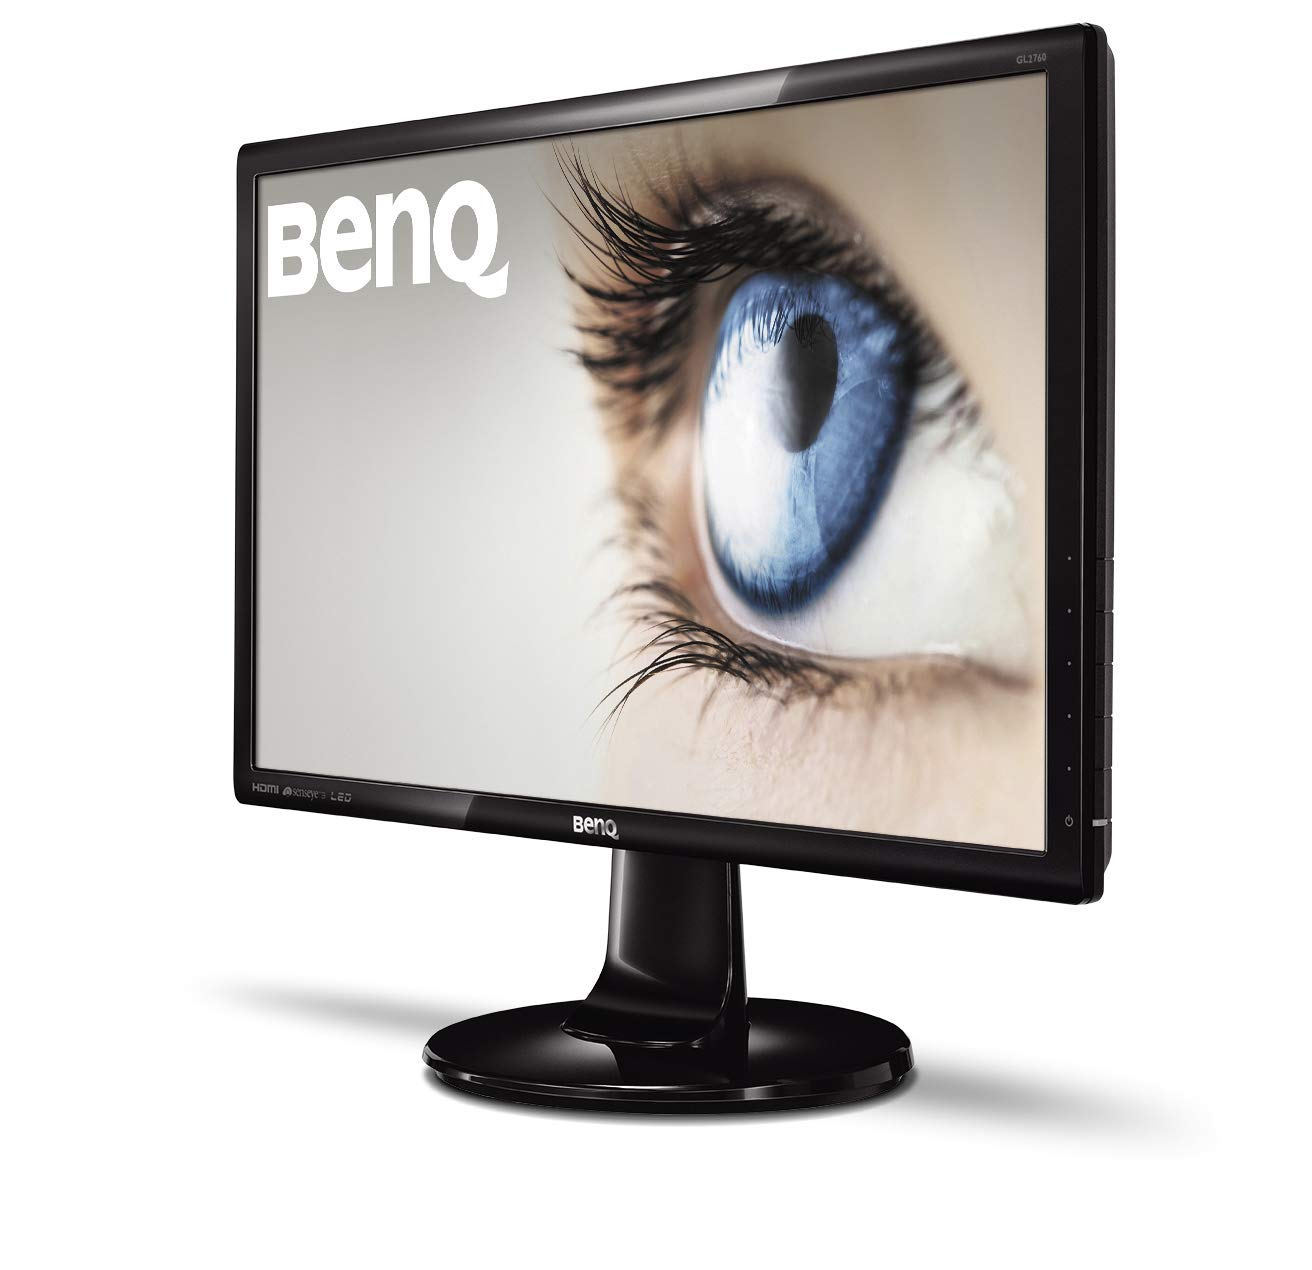 BenQ 27 Inch 1080P Monitor 75 Hz 1ms for Gaming Proprietary Eye-Care Tech Adaptive Brightness for Image Quality GL2780